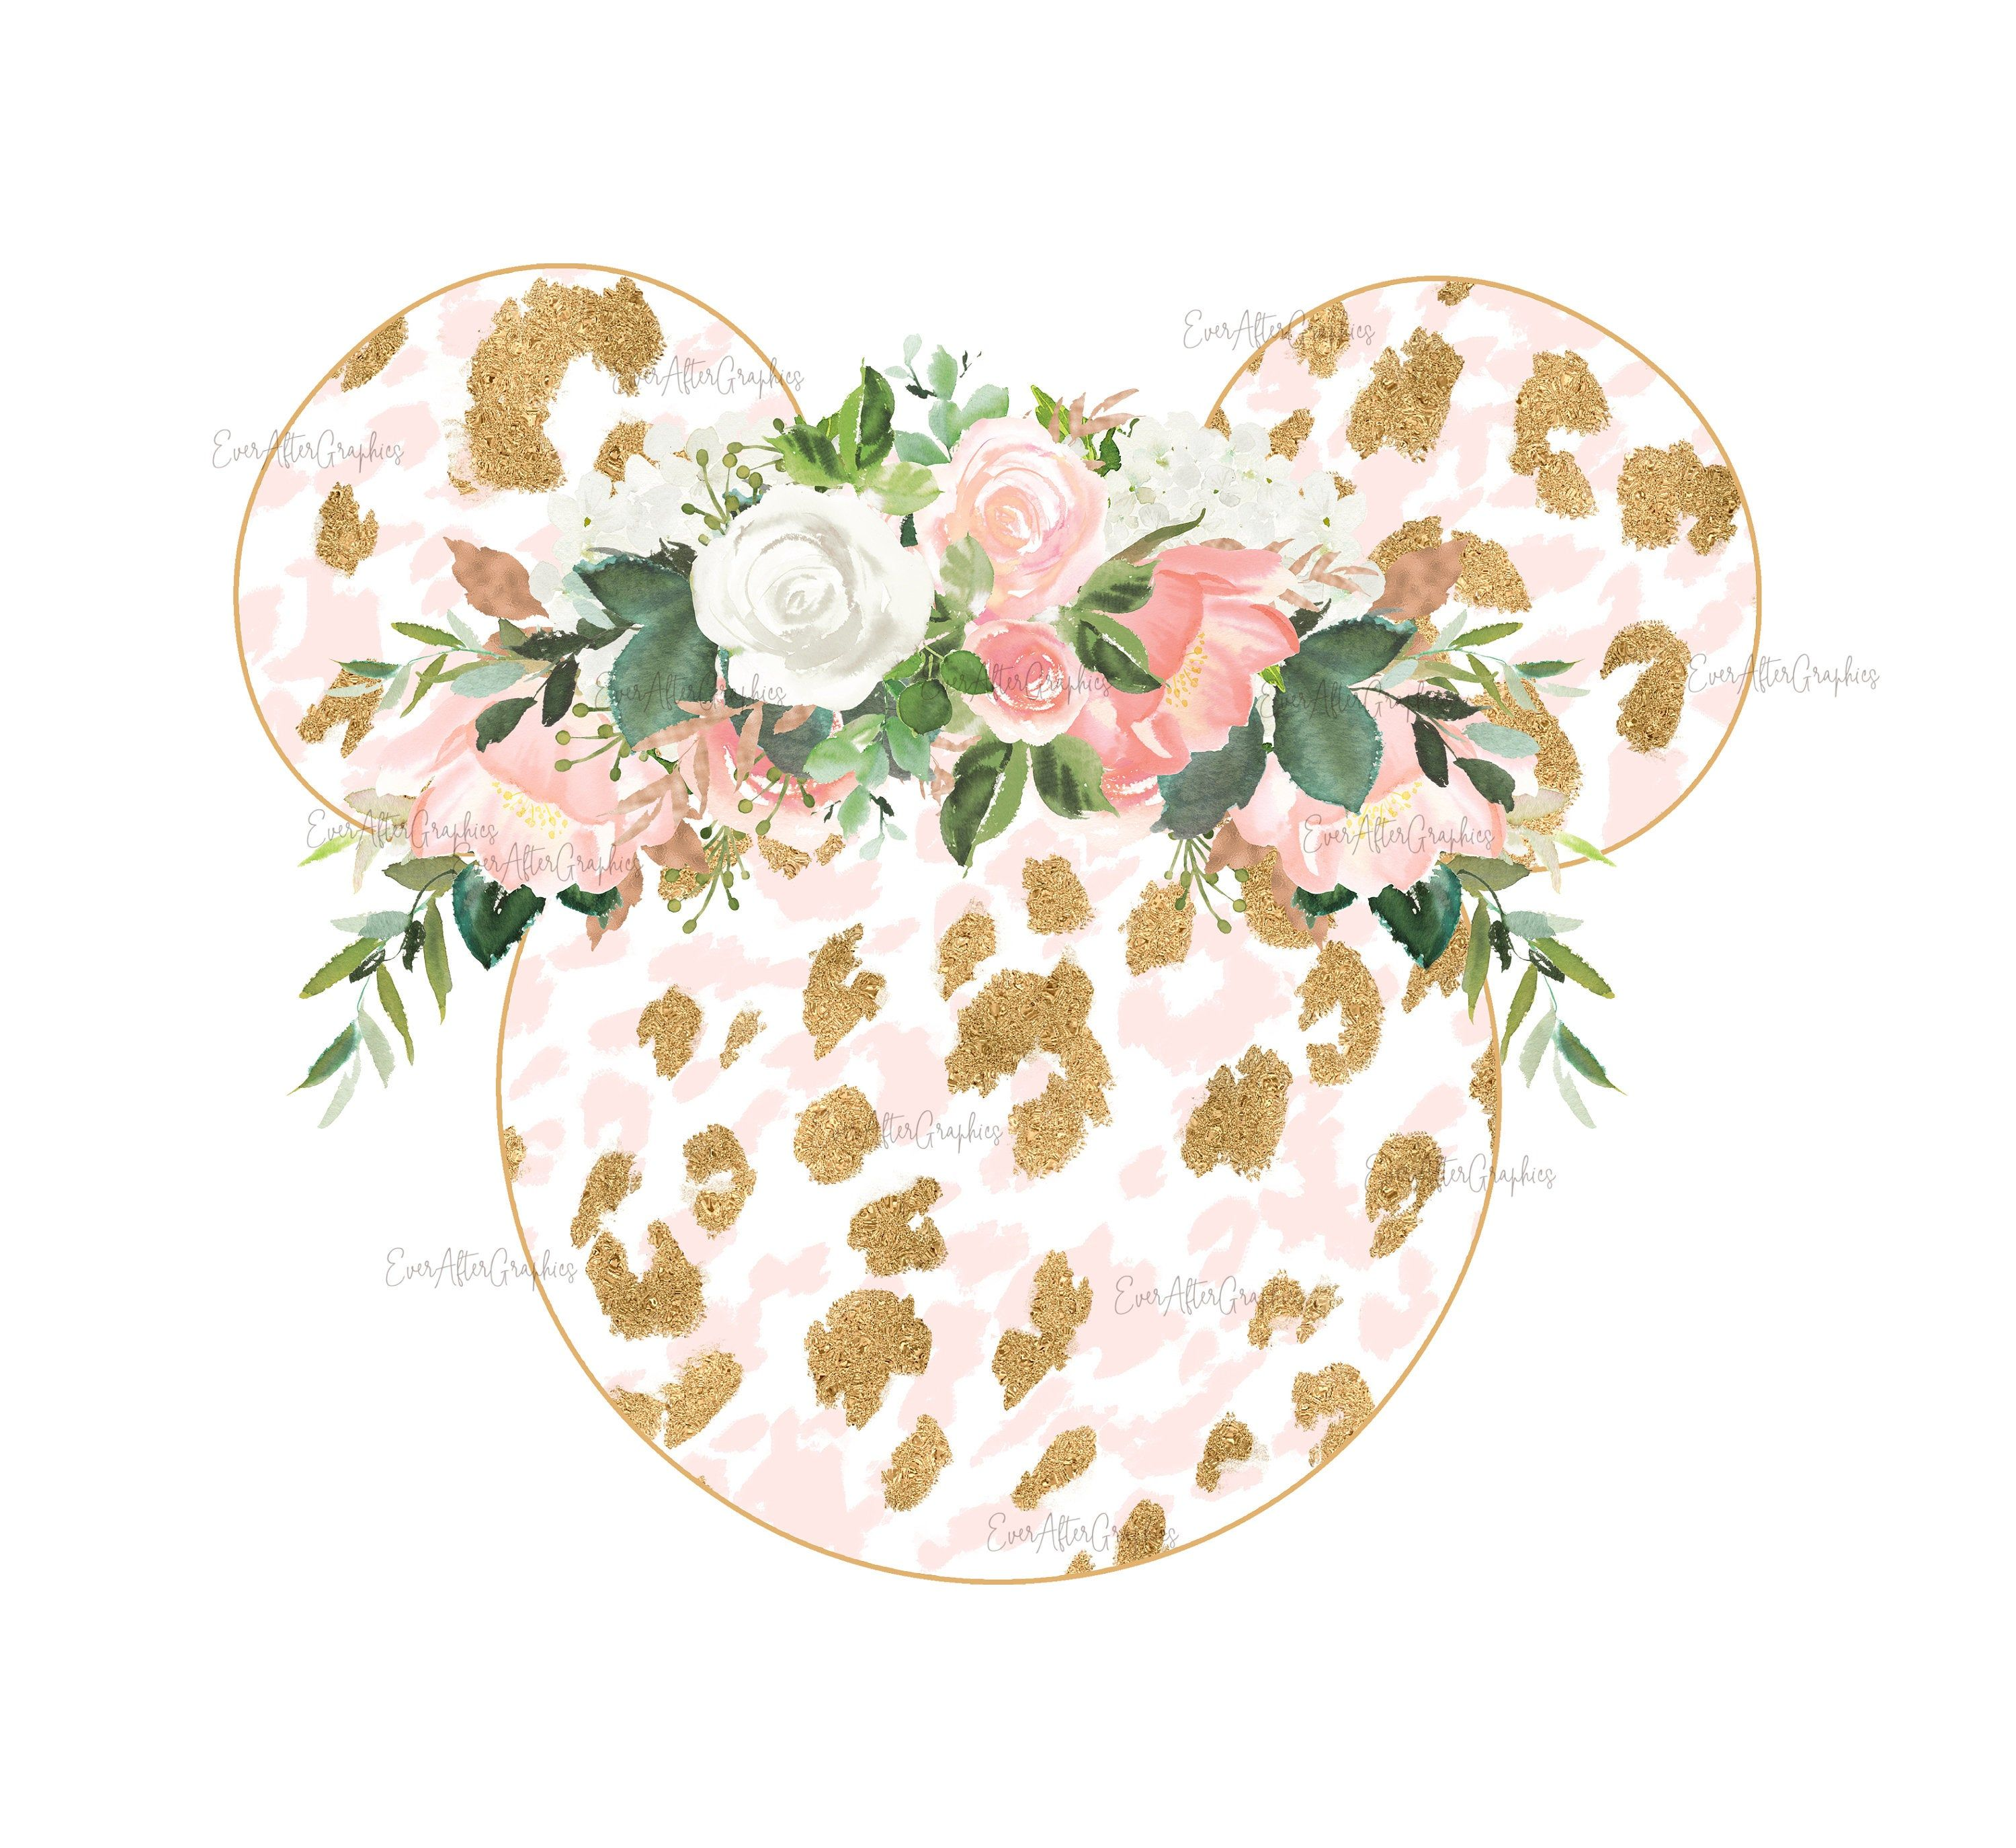 Photo of Leopard Floral Mouse Ears, Floral Minnie, Minnie mouse, Digital image, Minnie Sublimation Design, Mickey Mouse, Disney flower png, jpg